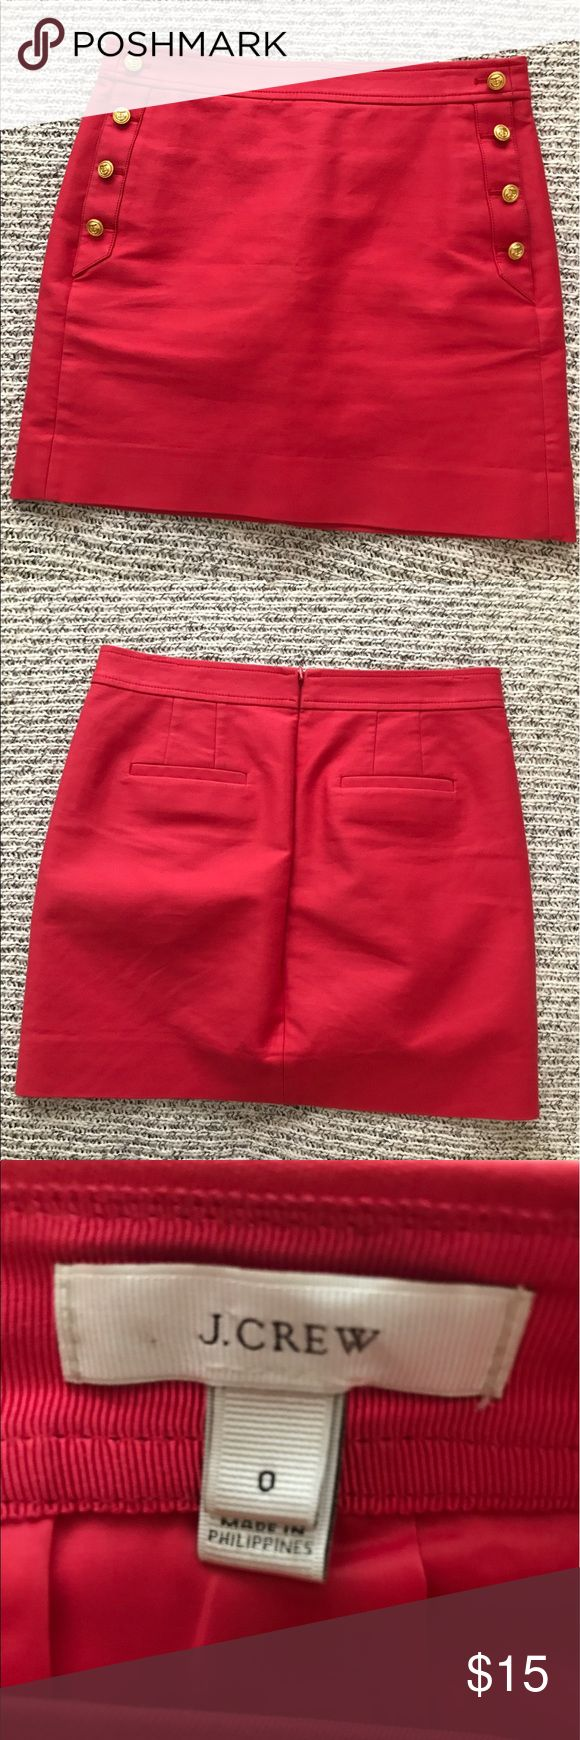 Preppy cute j crew skirt with pockets This skirt is nautically fabulous with a nice pink/salmon color and POCKETS!! Hits mid thigh. Worn twice. J. Crew Skirts Pencil